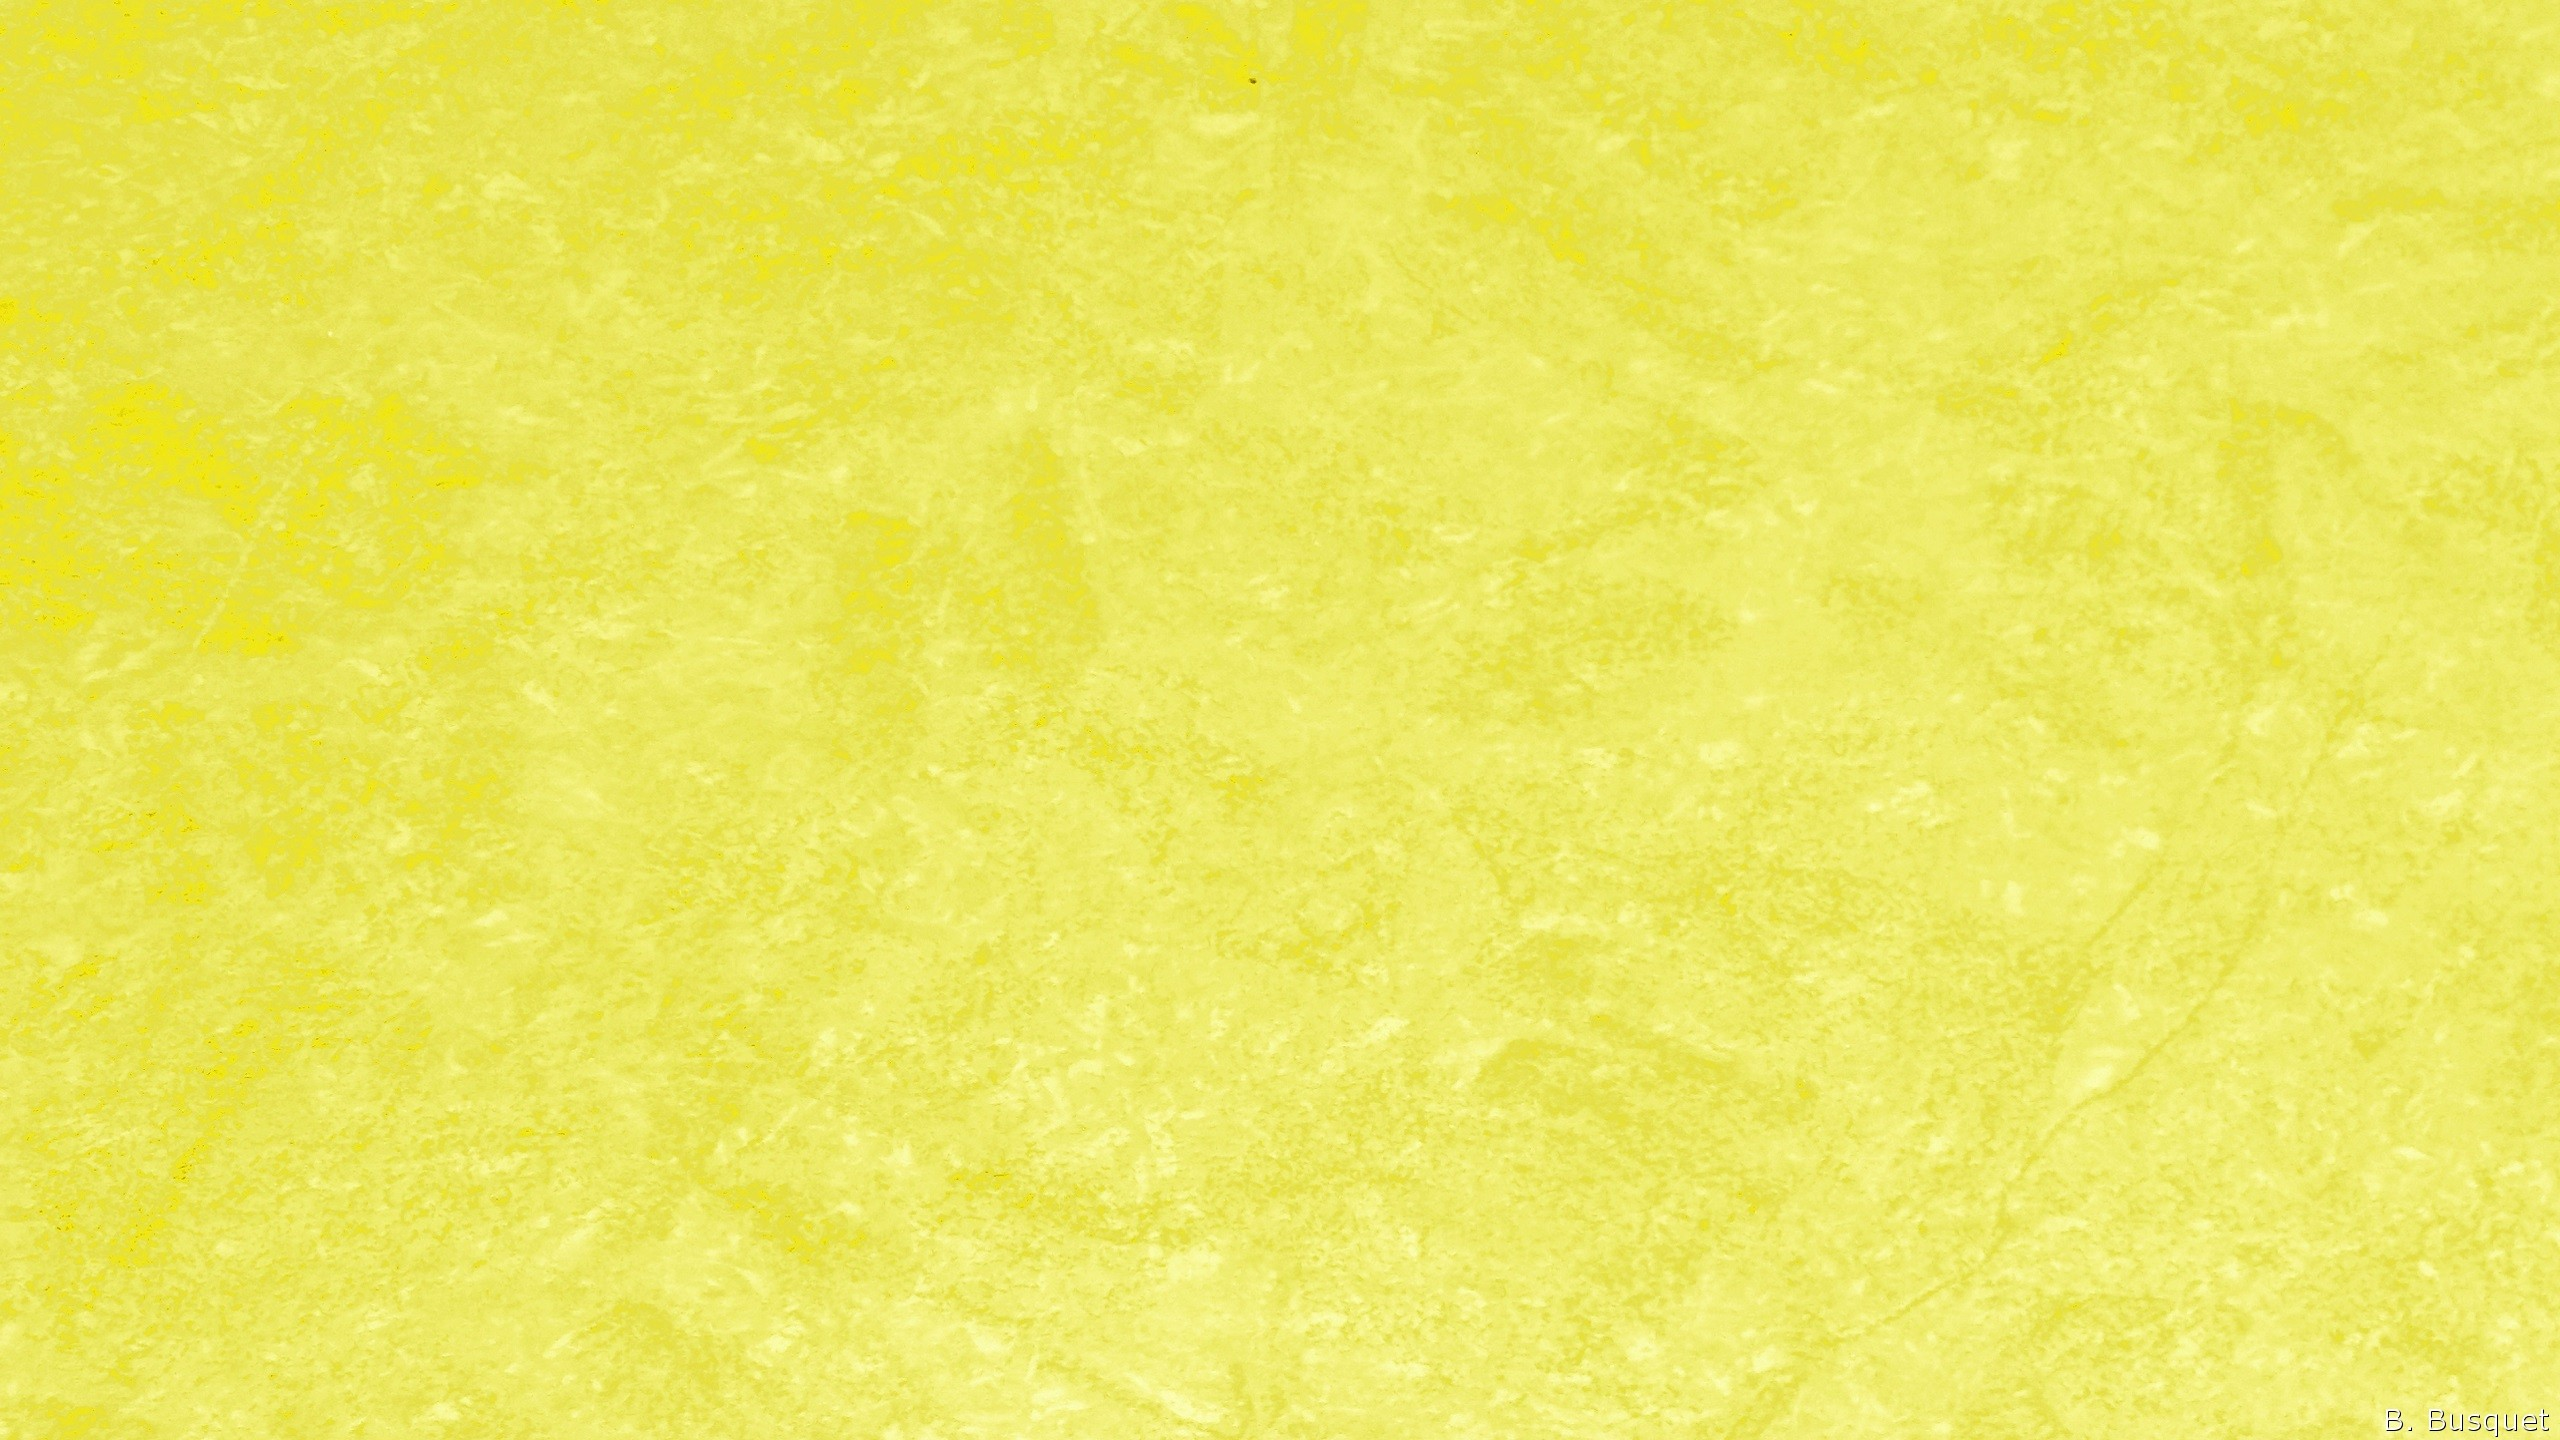 light yellow wallpaper patterns Gallery